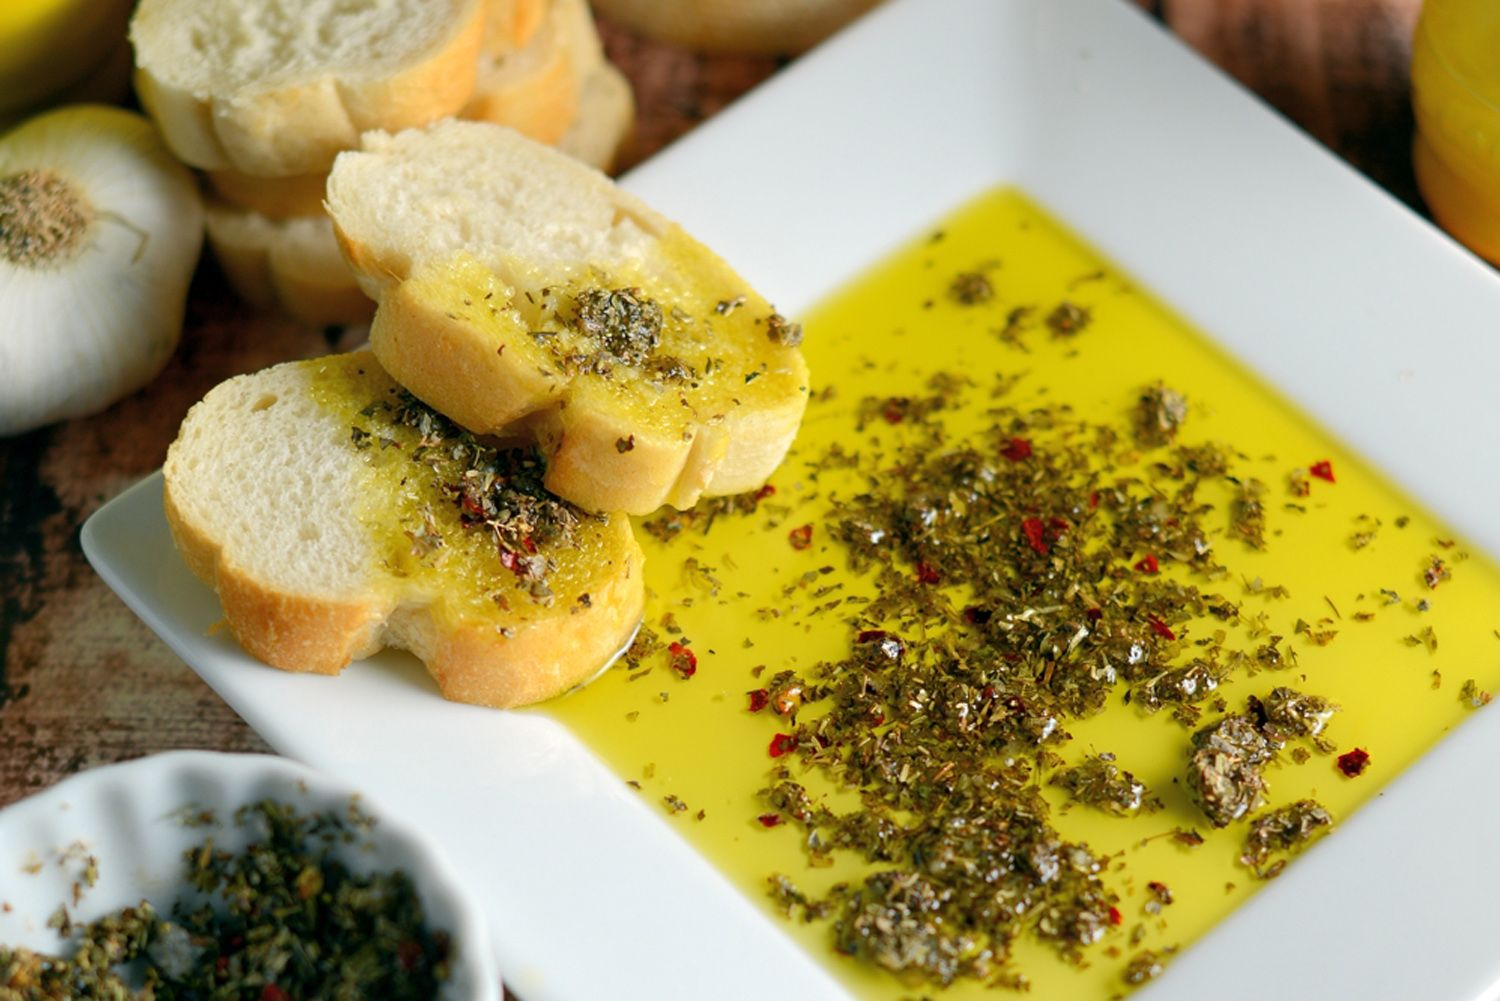 Get the special blend of spices to make Carrabba's Olive ...